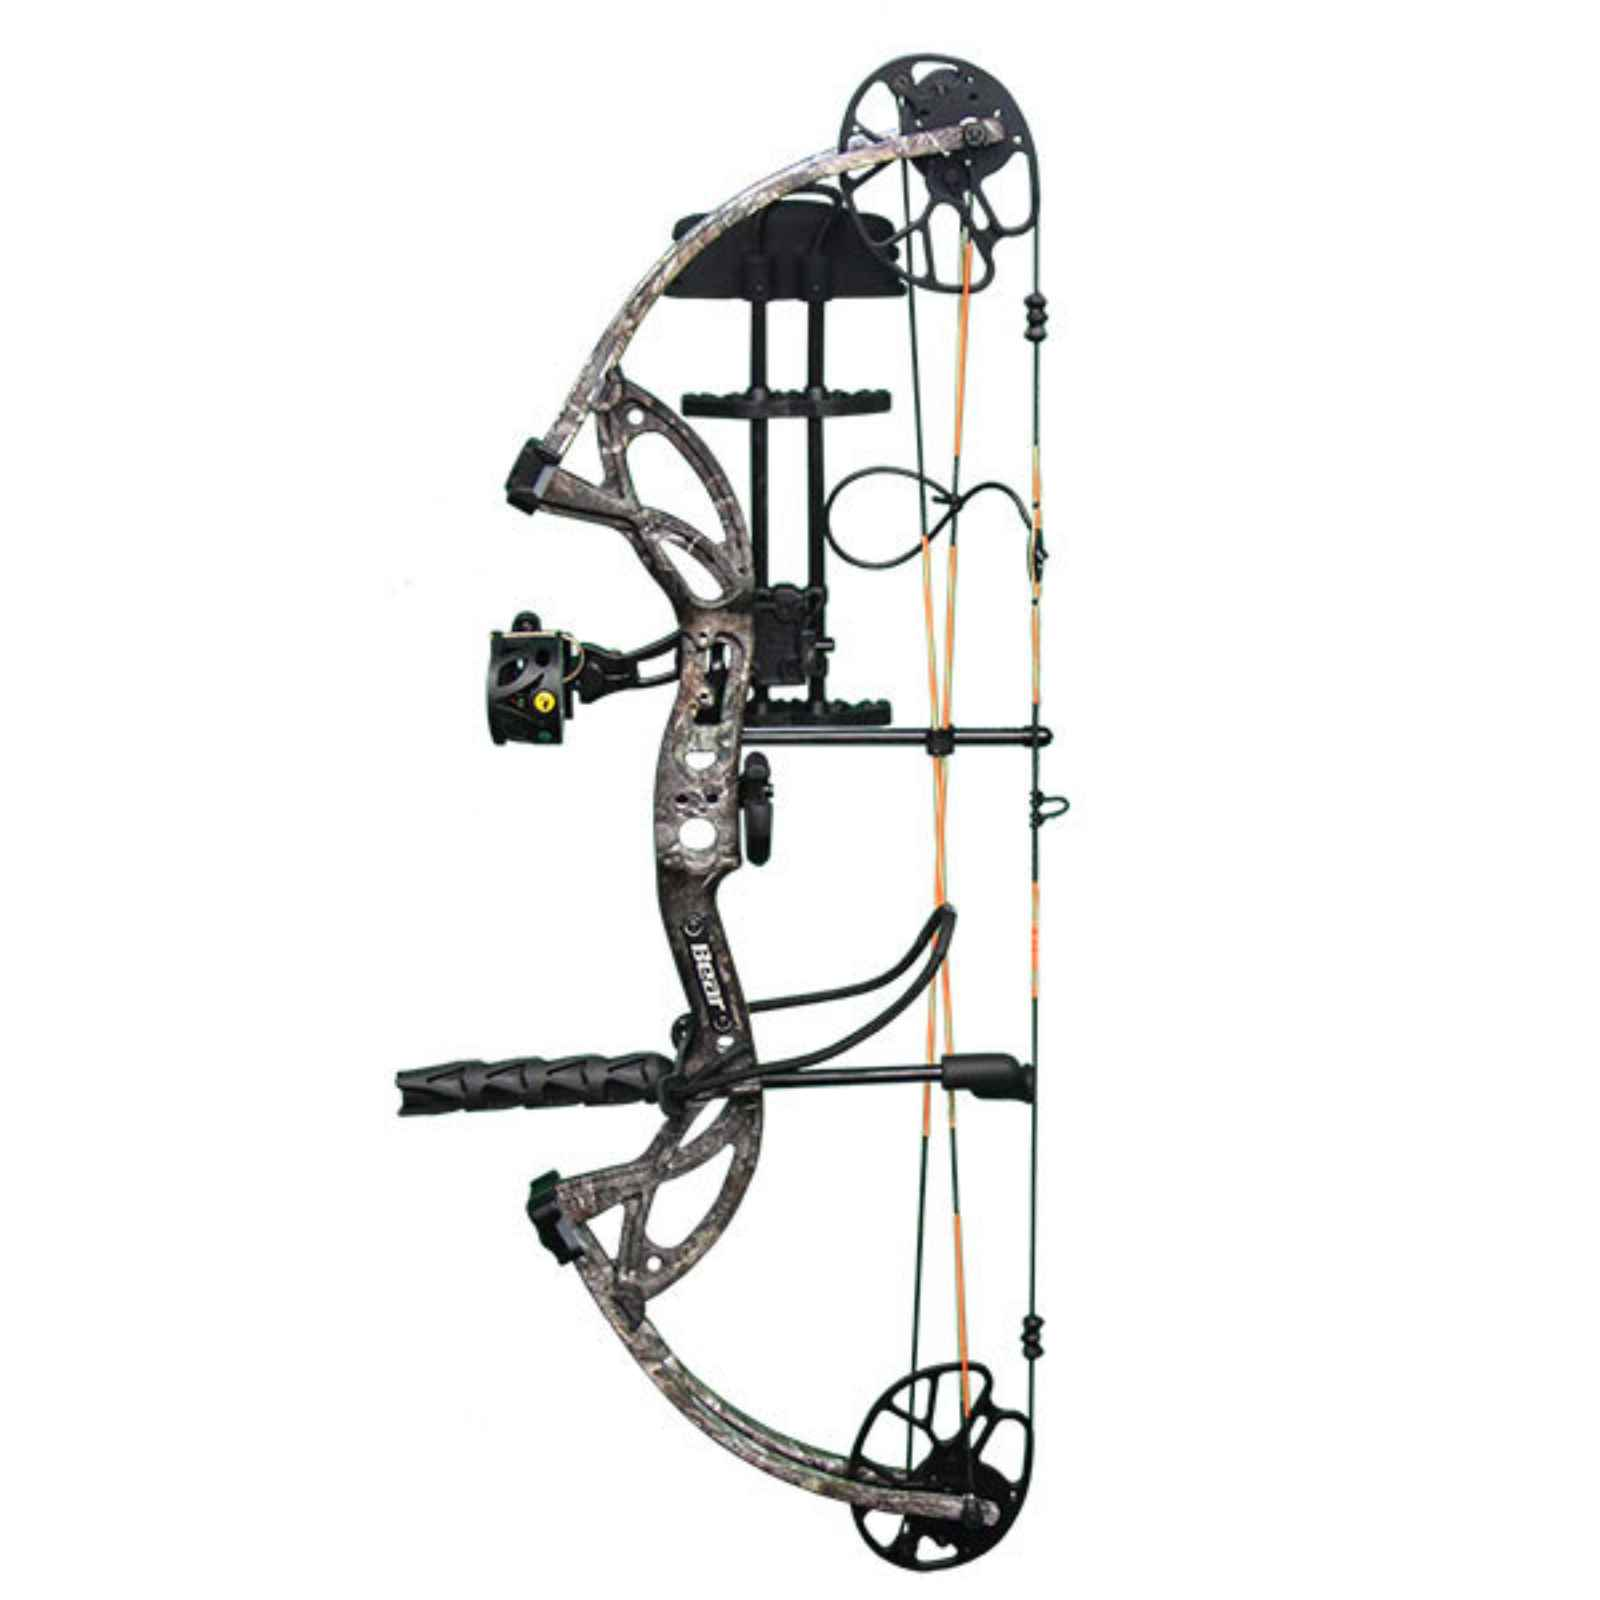 Bear Archery Cruzer G2 RTH RH 70 True Timber Kanati, AV83B21077R by Bear Archery